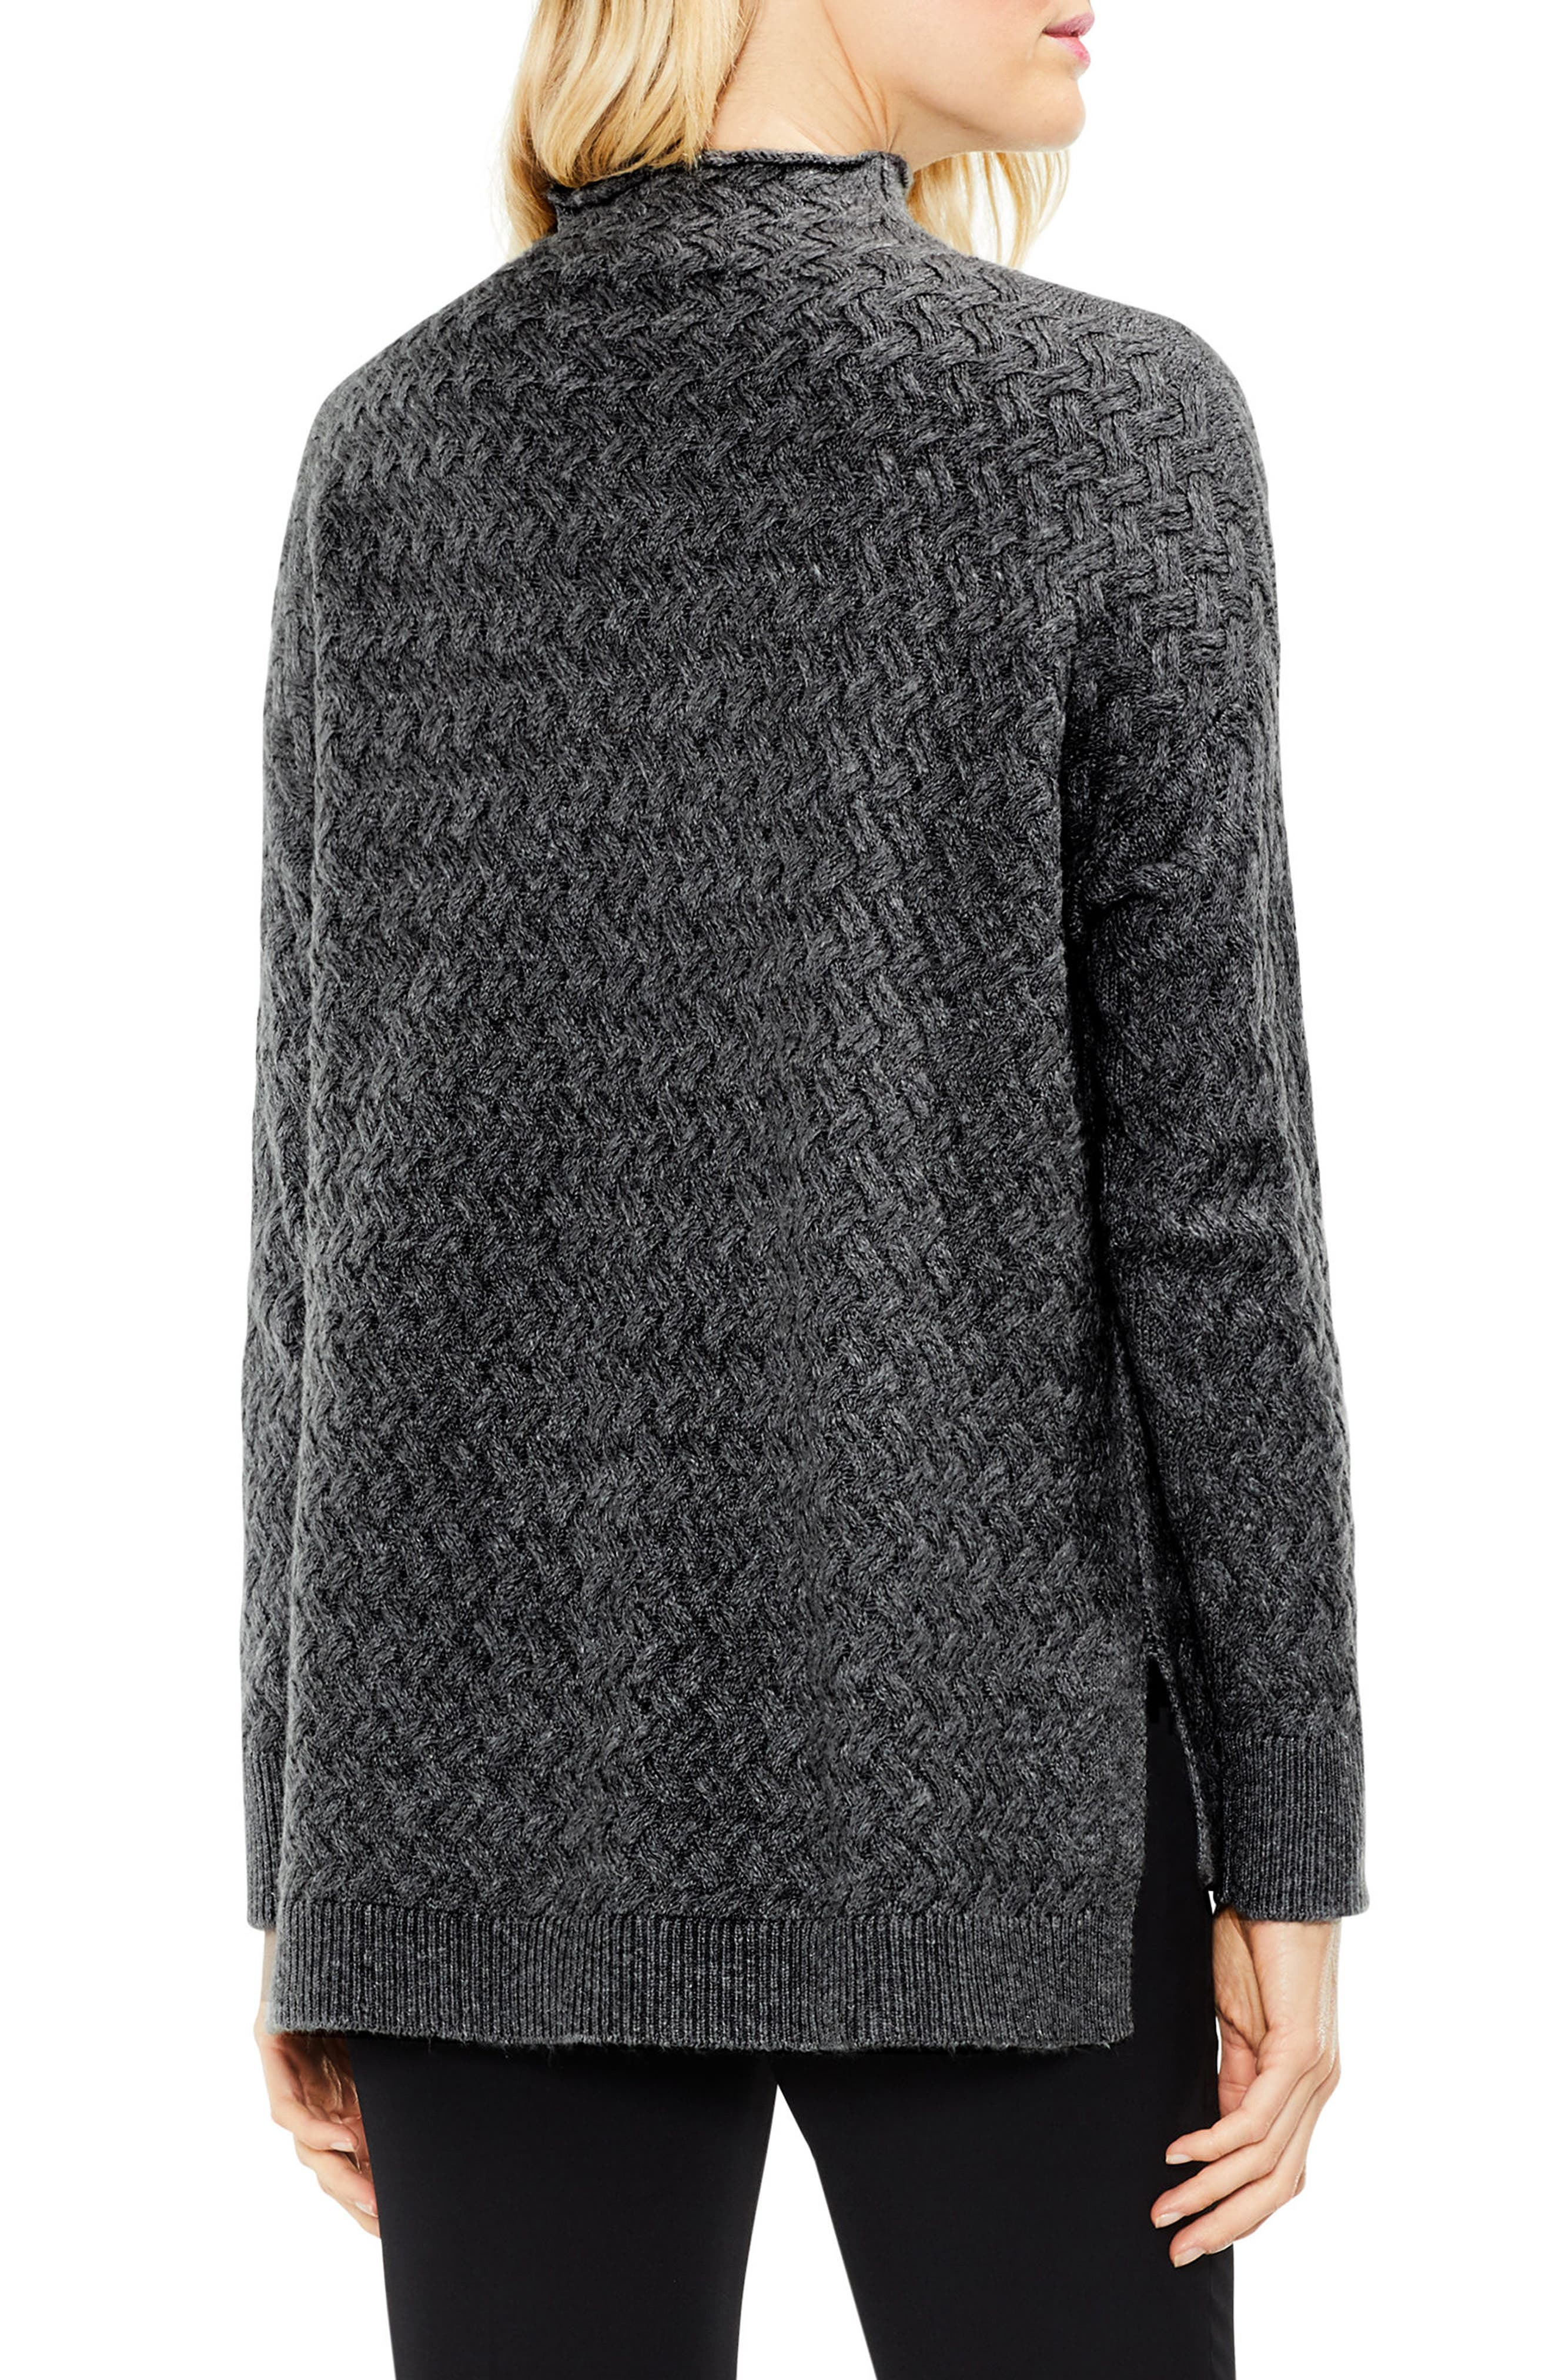 Cable Mock Neck Sweater,                             Main thumbnail 1, color,                             023